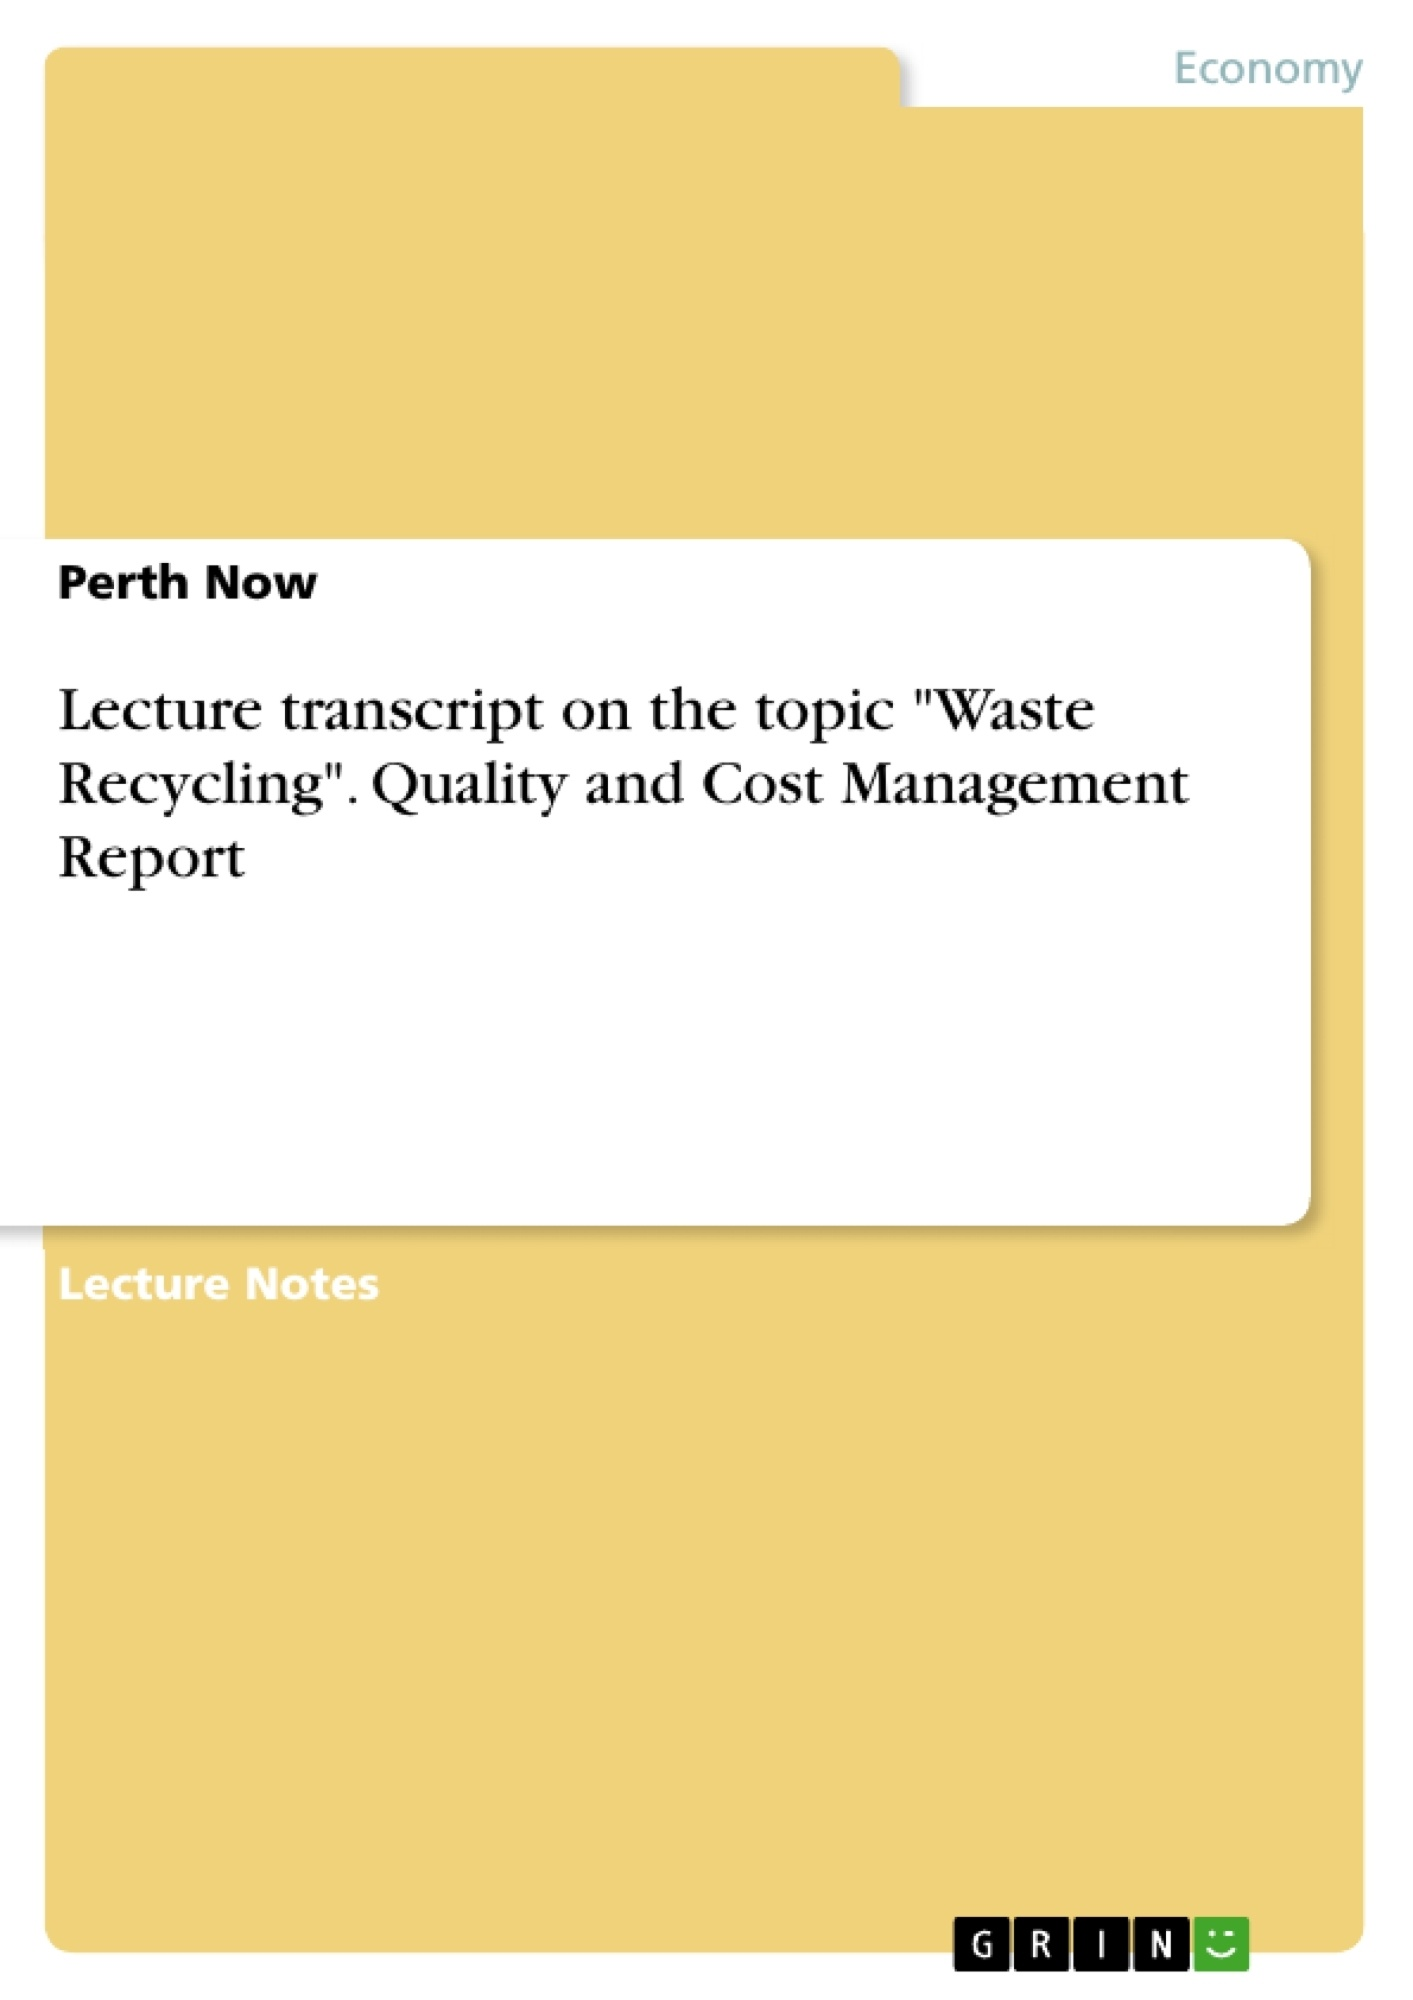 """Title: Lecture transcript on the topic """"Waste Recycling"""". Quality and Cost Management Report"""